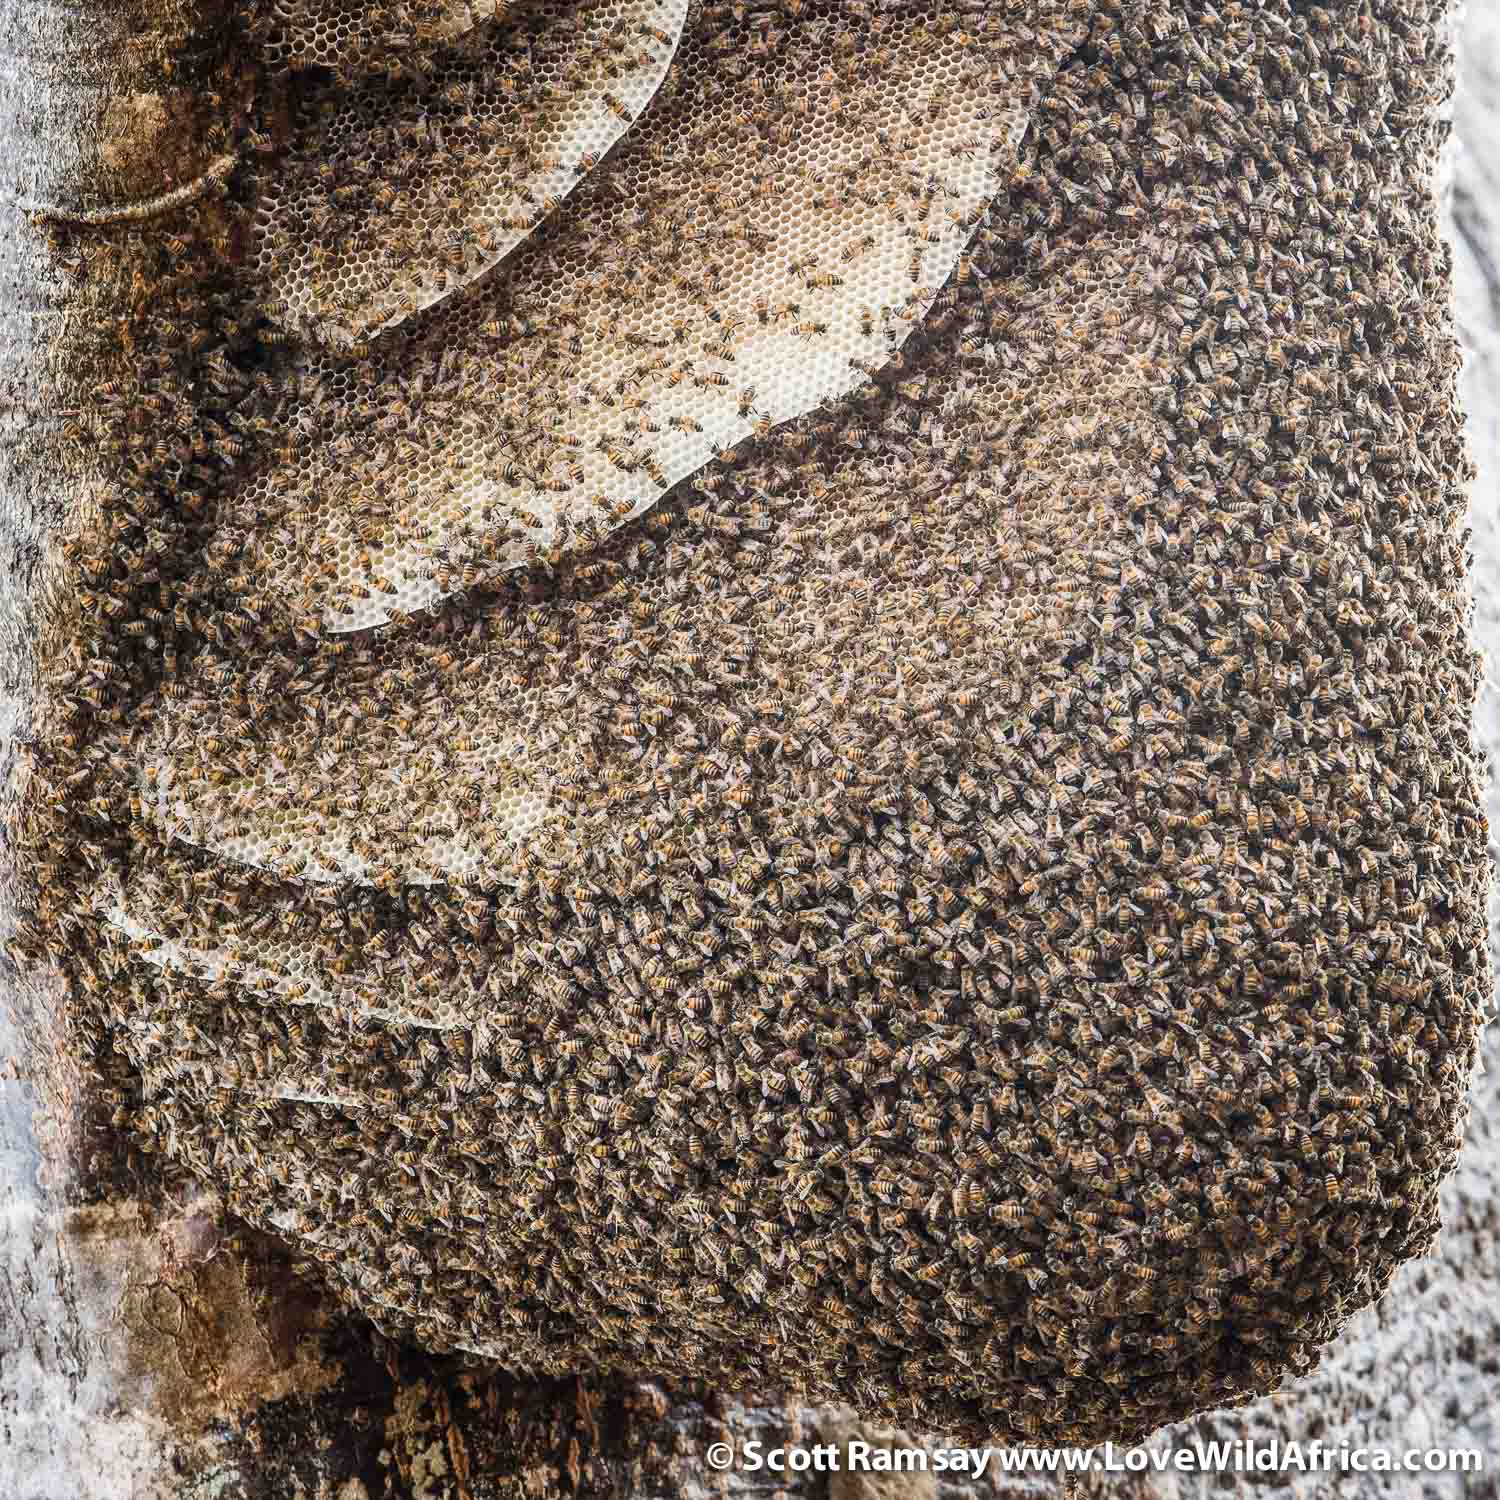 Wildness comes in many forms, and for me, it is represented not only in lions and elephants and other charismatic species, but also insects like this wild bee hive which we saw hanging from a tree. Remarkable to witness!